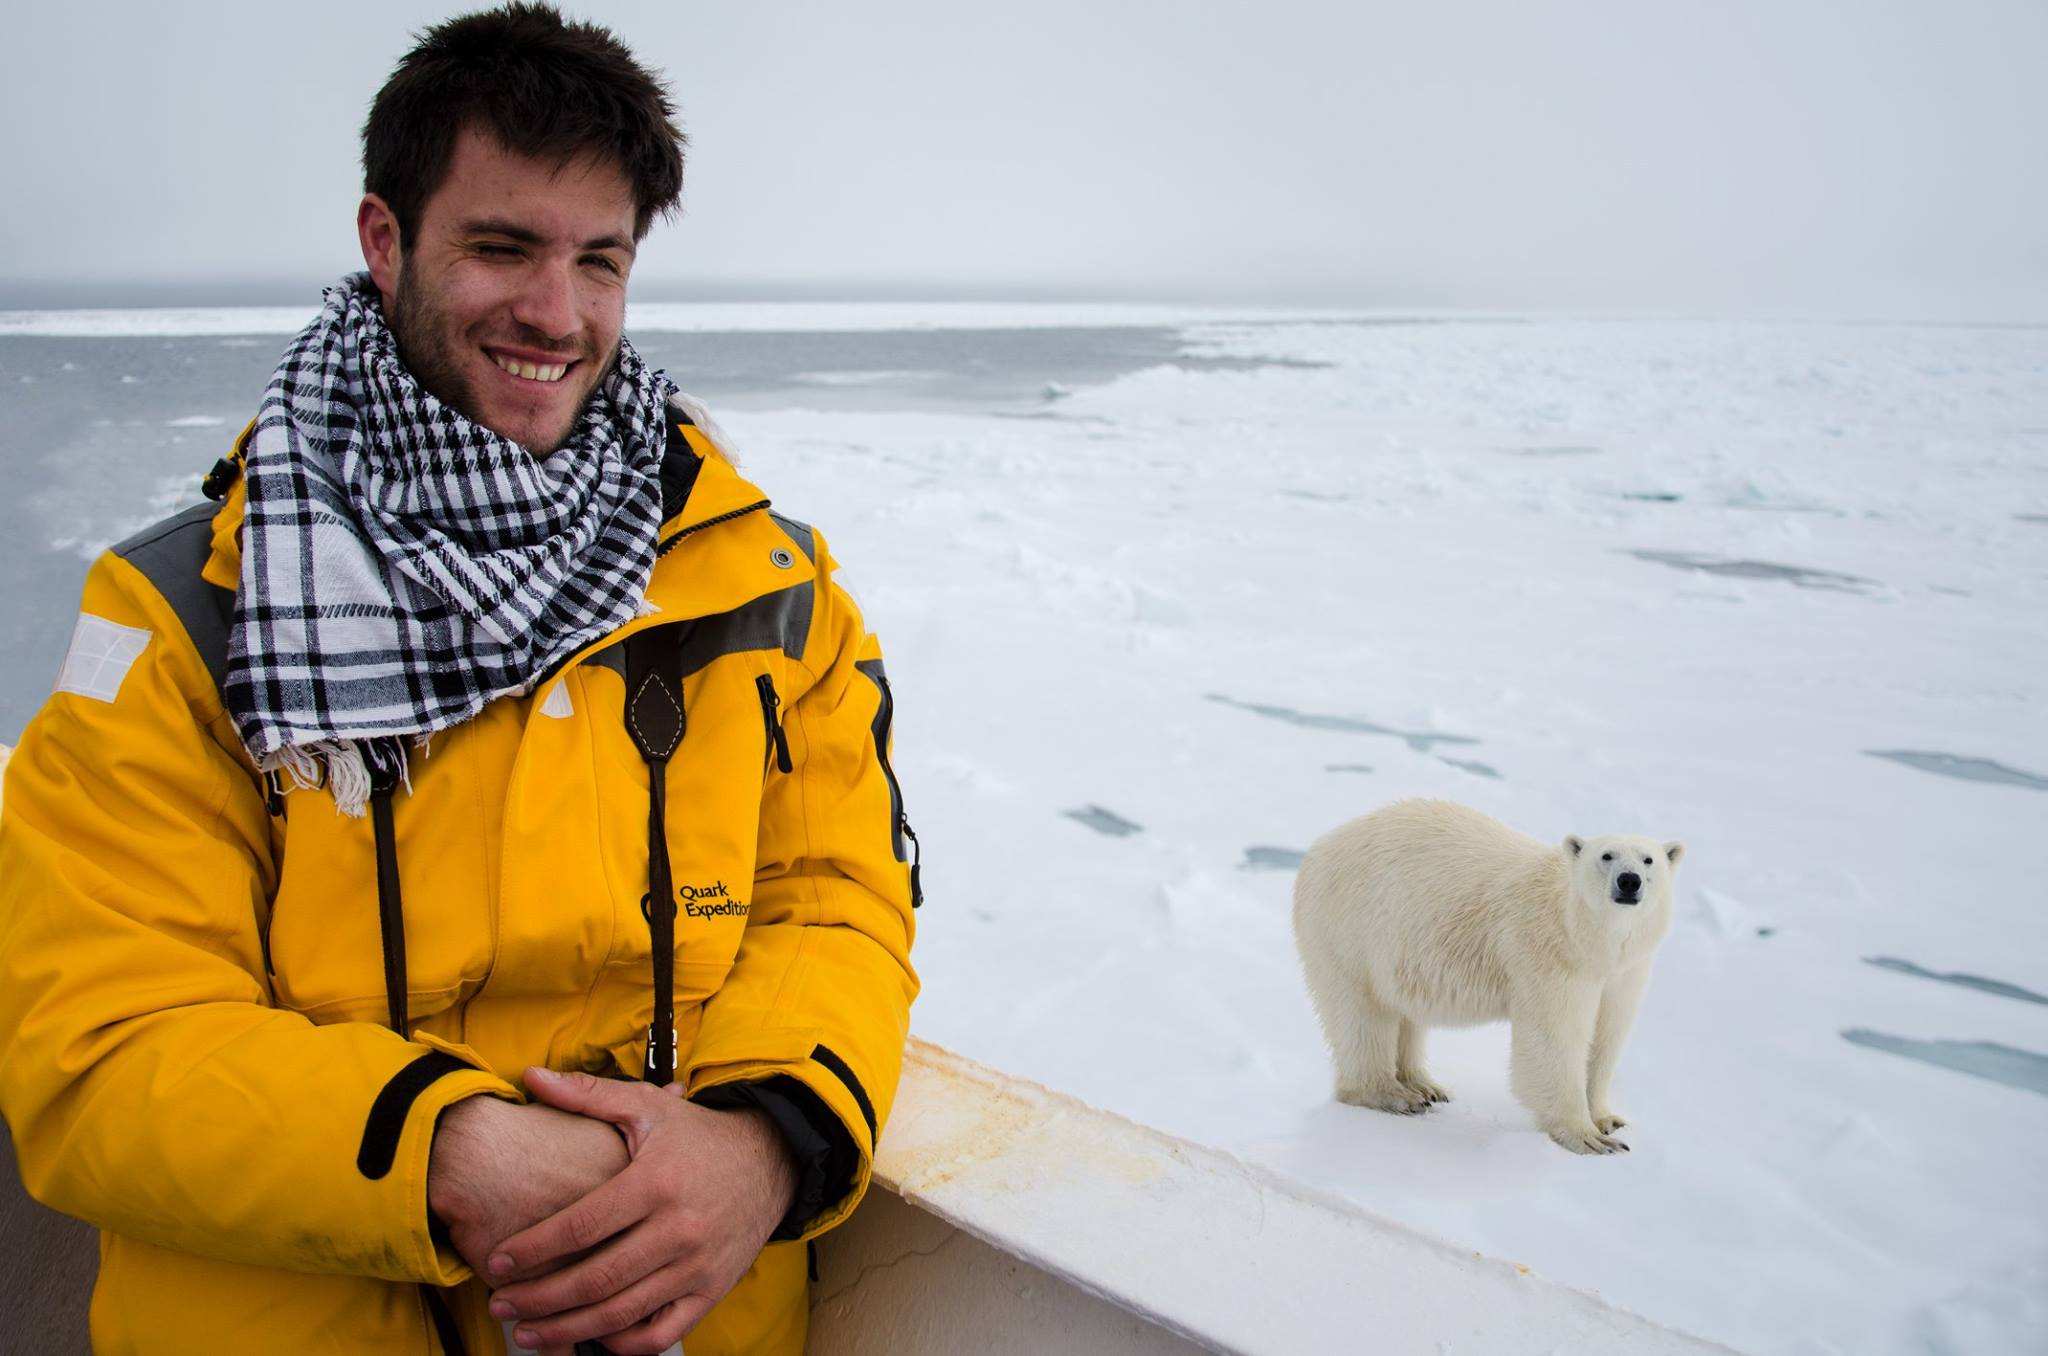 Harry Skeggs has won accolades for his polar photography.